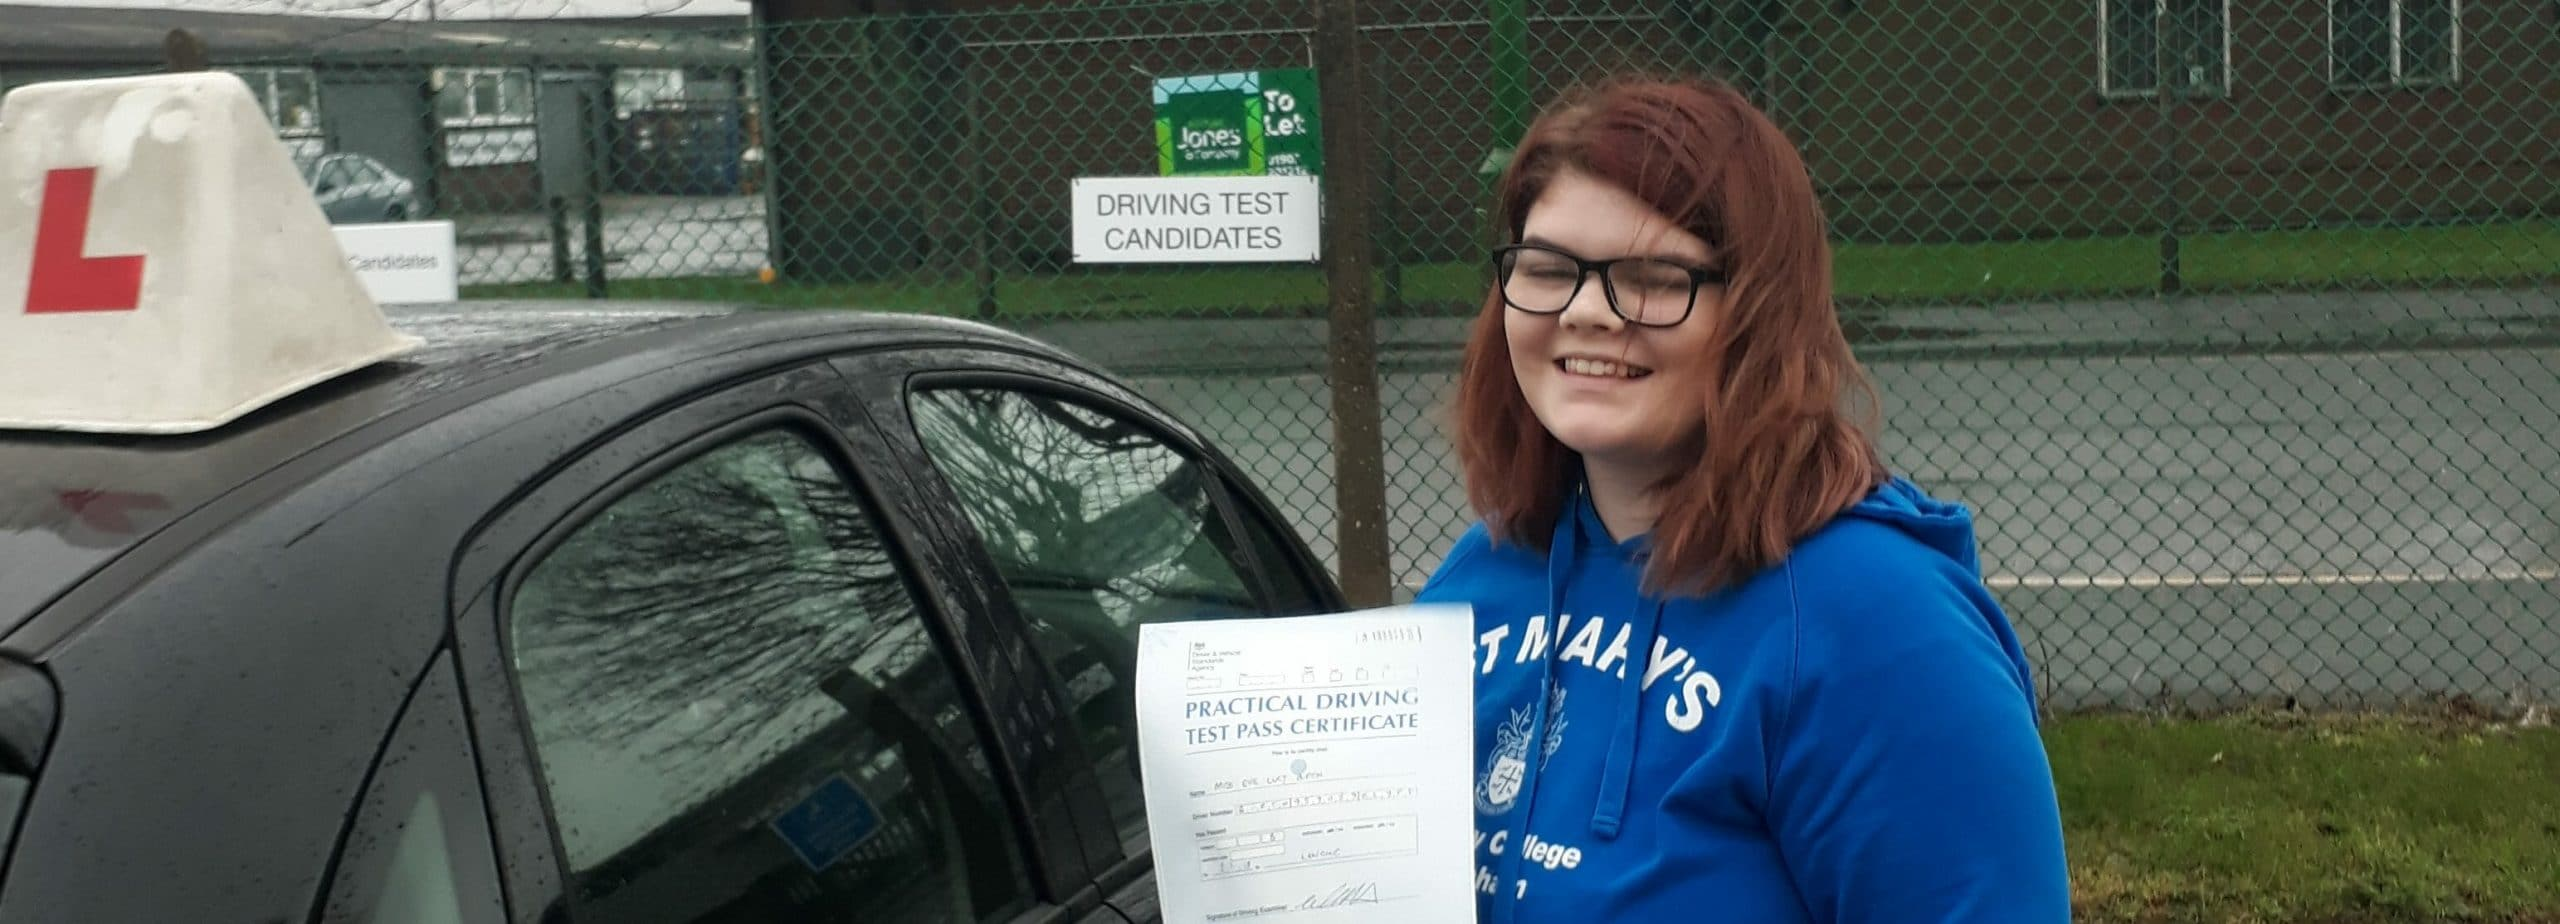 Well done to Eve Birch of Worthing